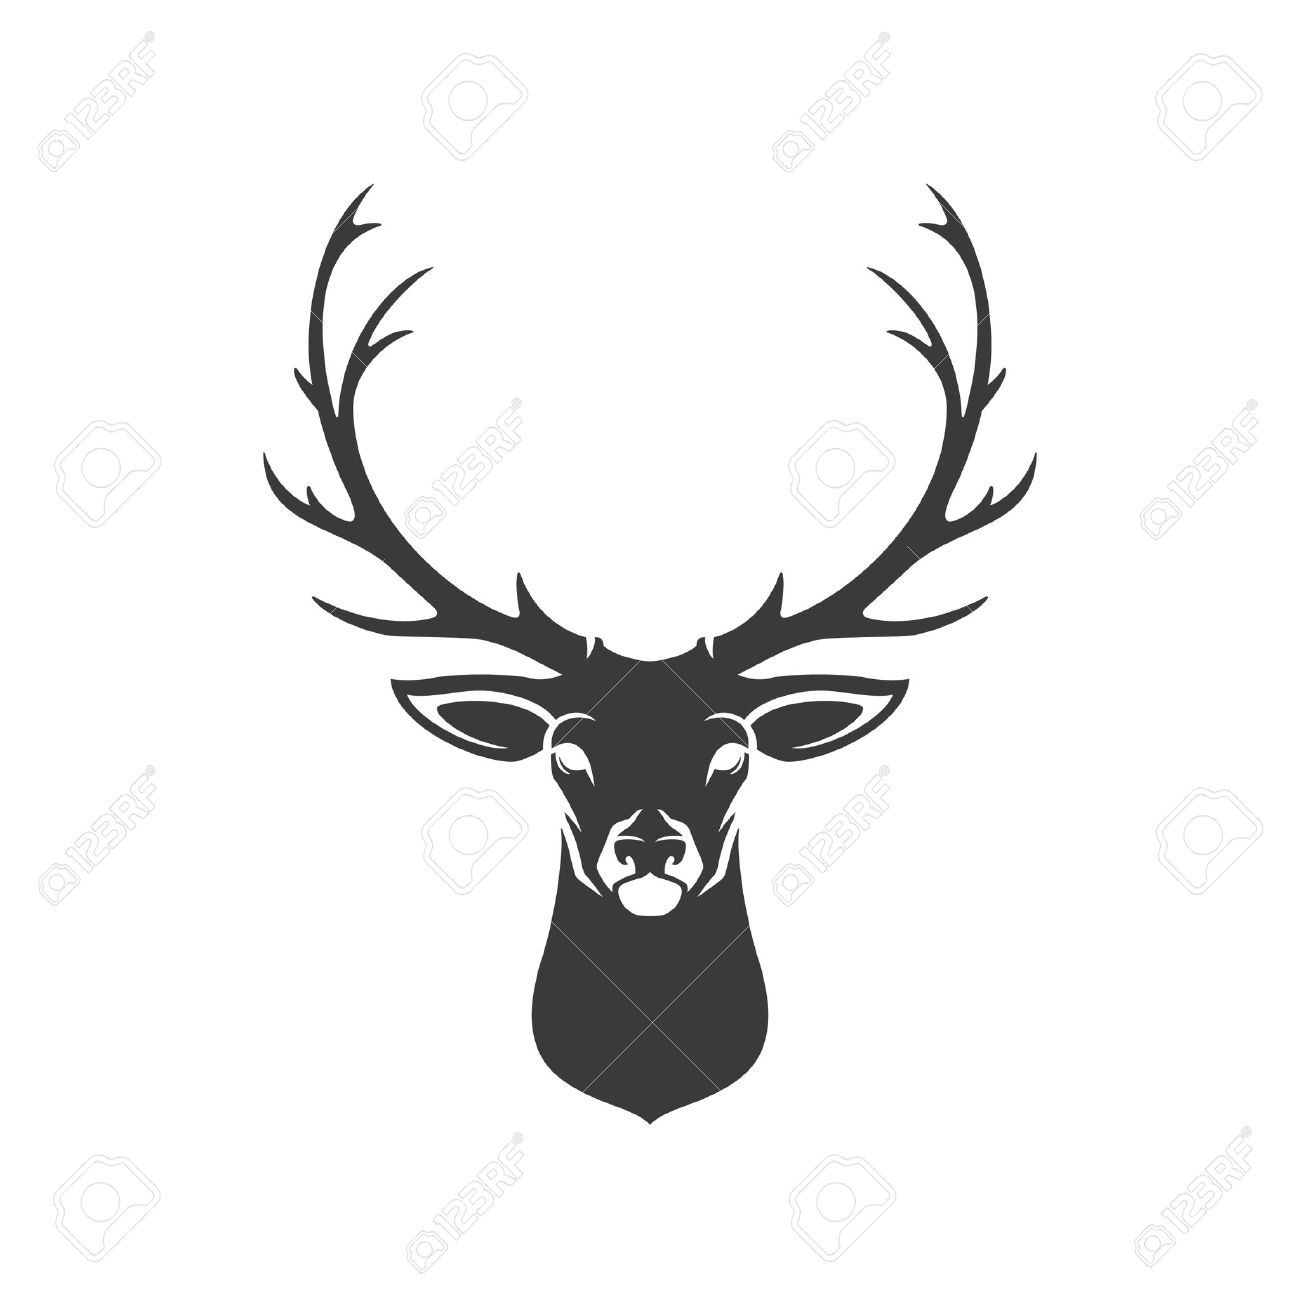 1300x1300 Deer Head Silhouette Isolated On White Background Vector Object